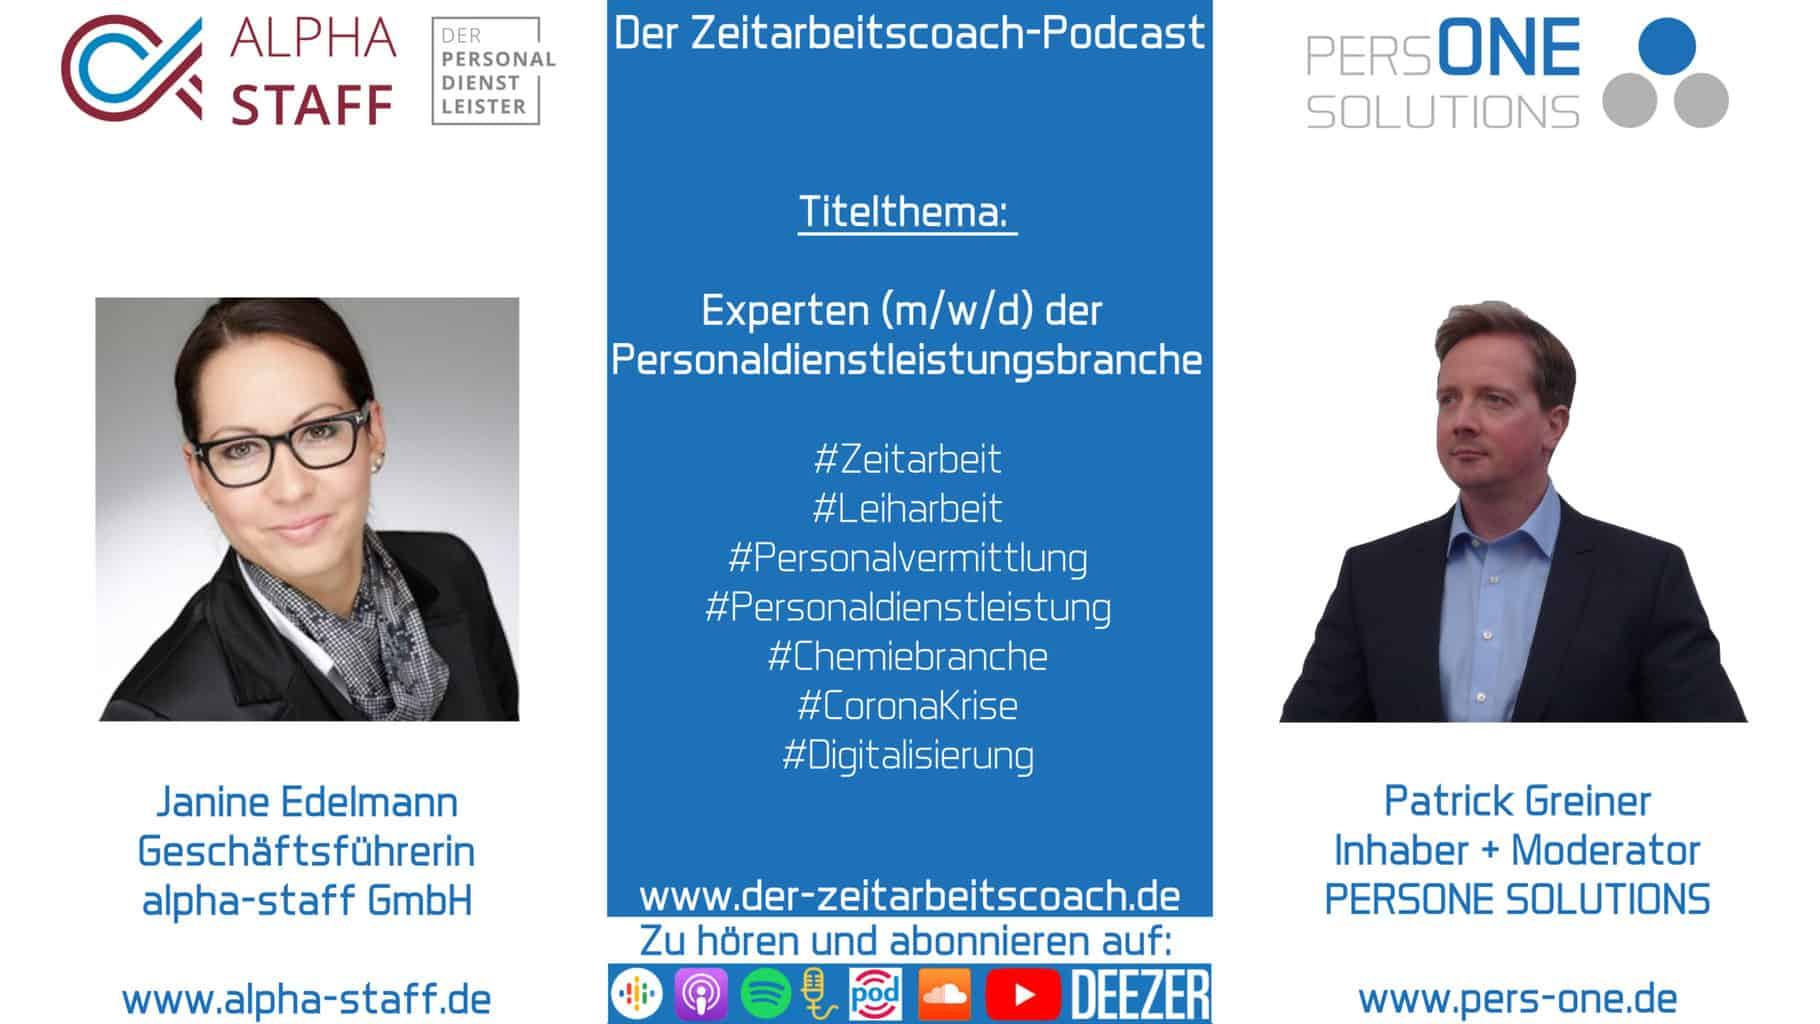 Edelmann, Janine_Podcast SM Grafik-Interview_Zeitarbeitscoach-Podcast